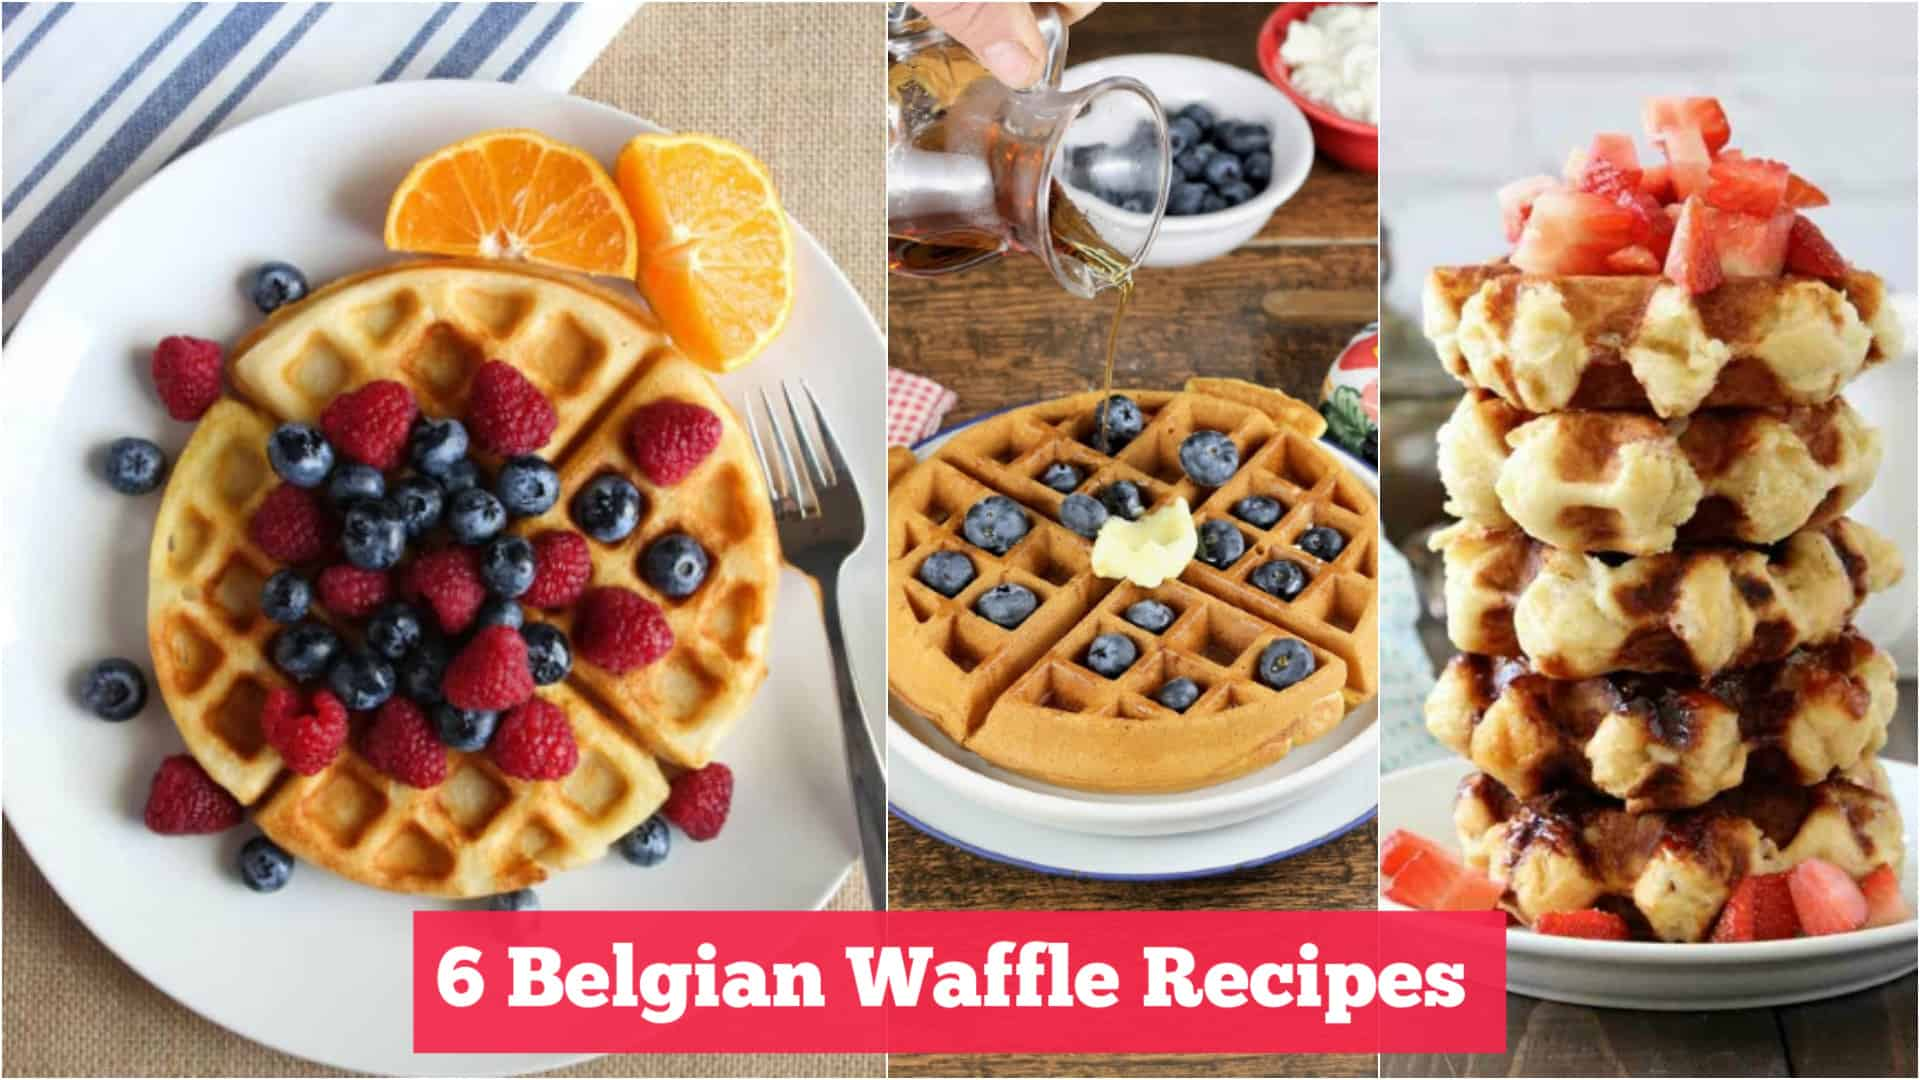 6 Homemade Belgian Waffle Recipes (Fluffy and Delicious!)